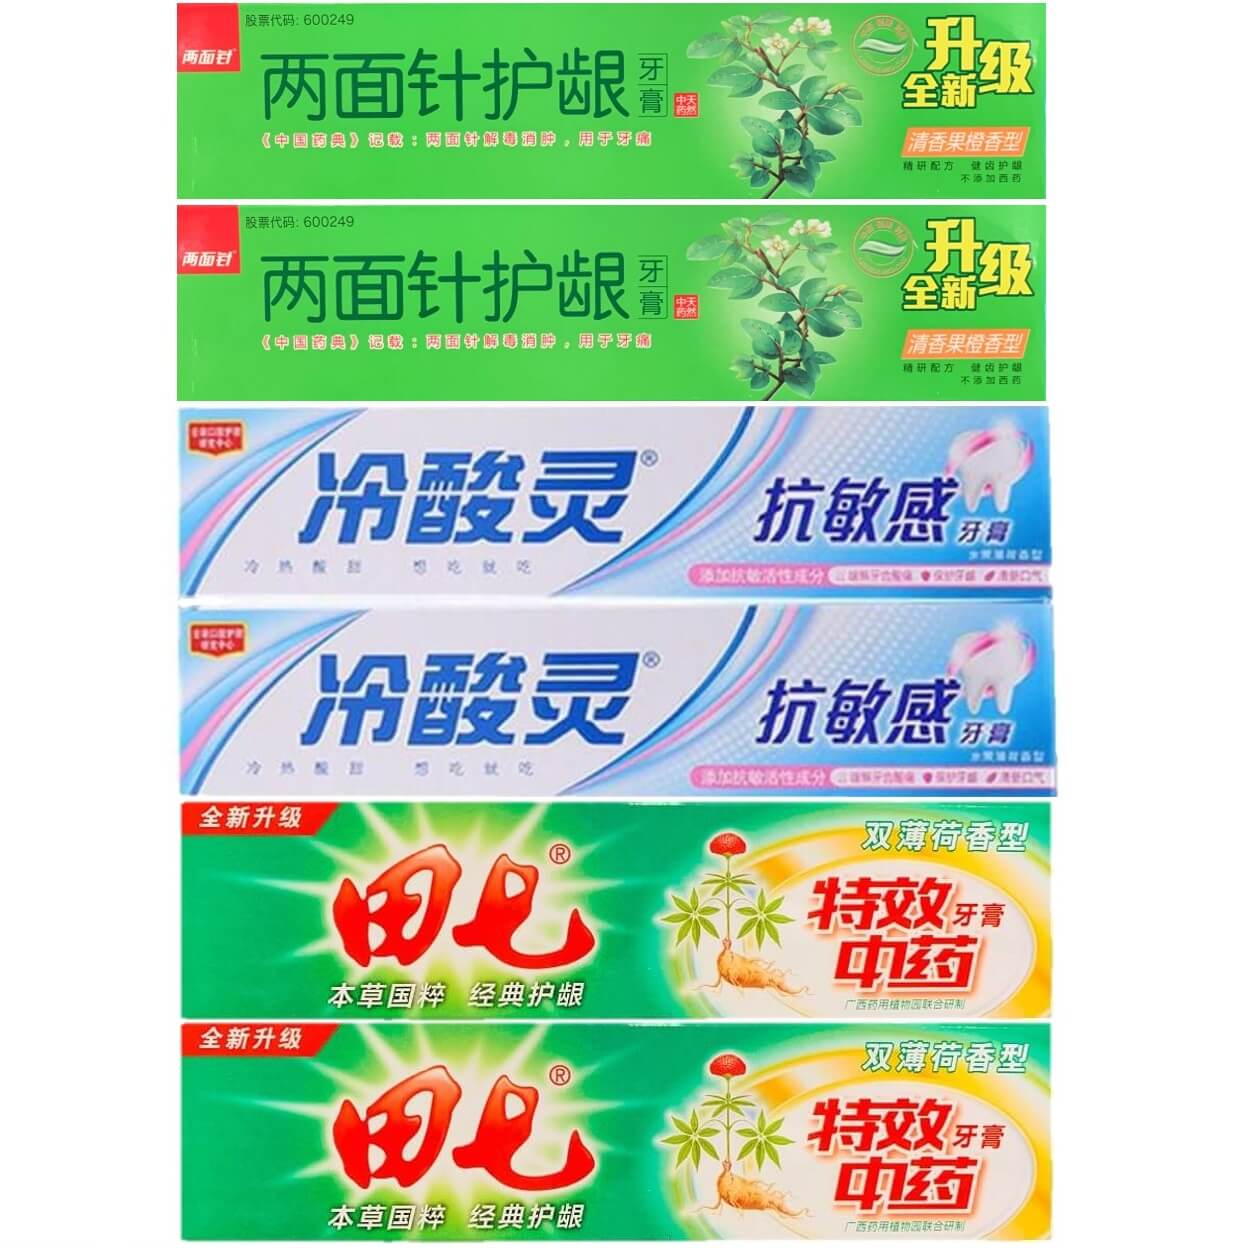 Herbal Toothpaste Variety, Liang Mian Zhen, Len Shuan Ling, Notoginseng - 6 Boxes-Buy at New Green Nutrition